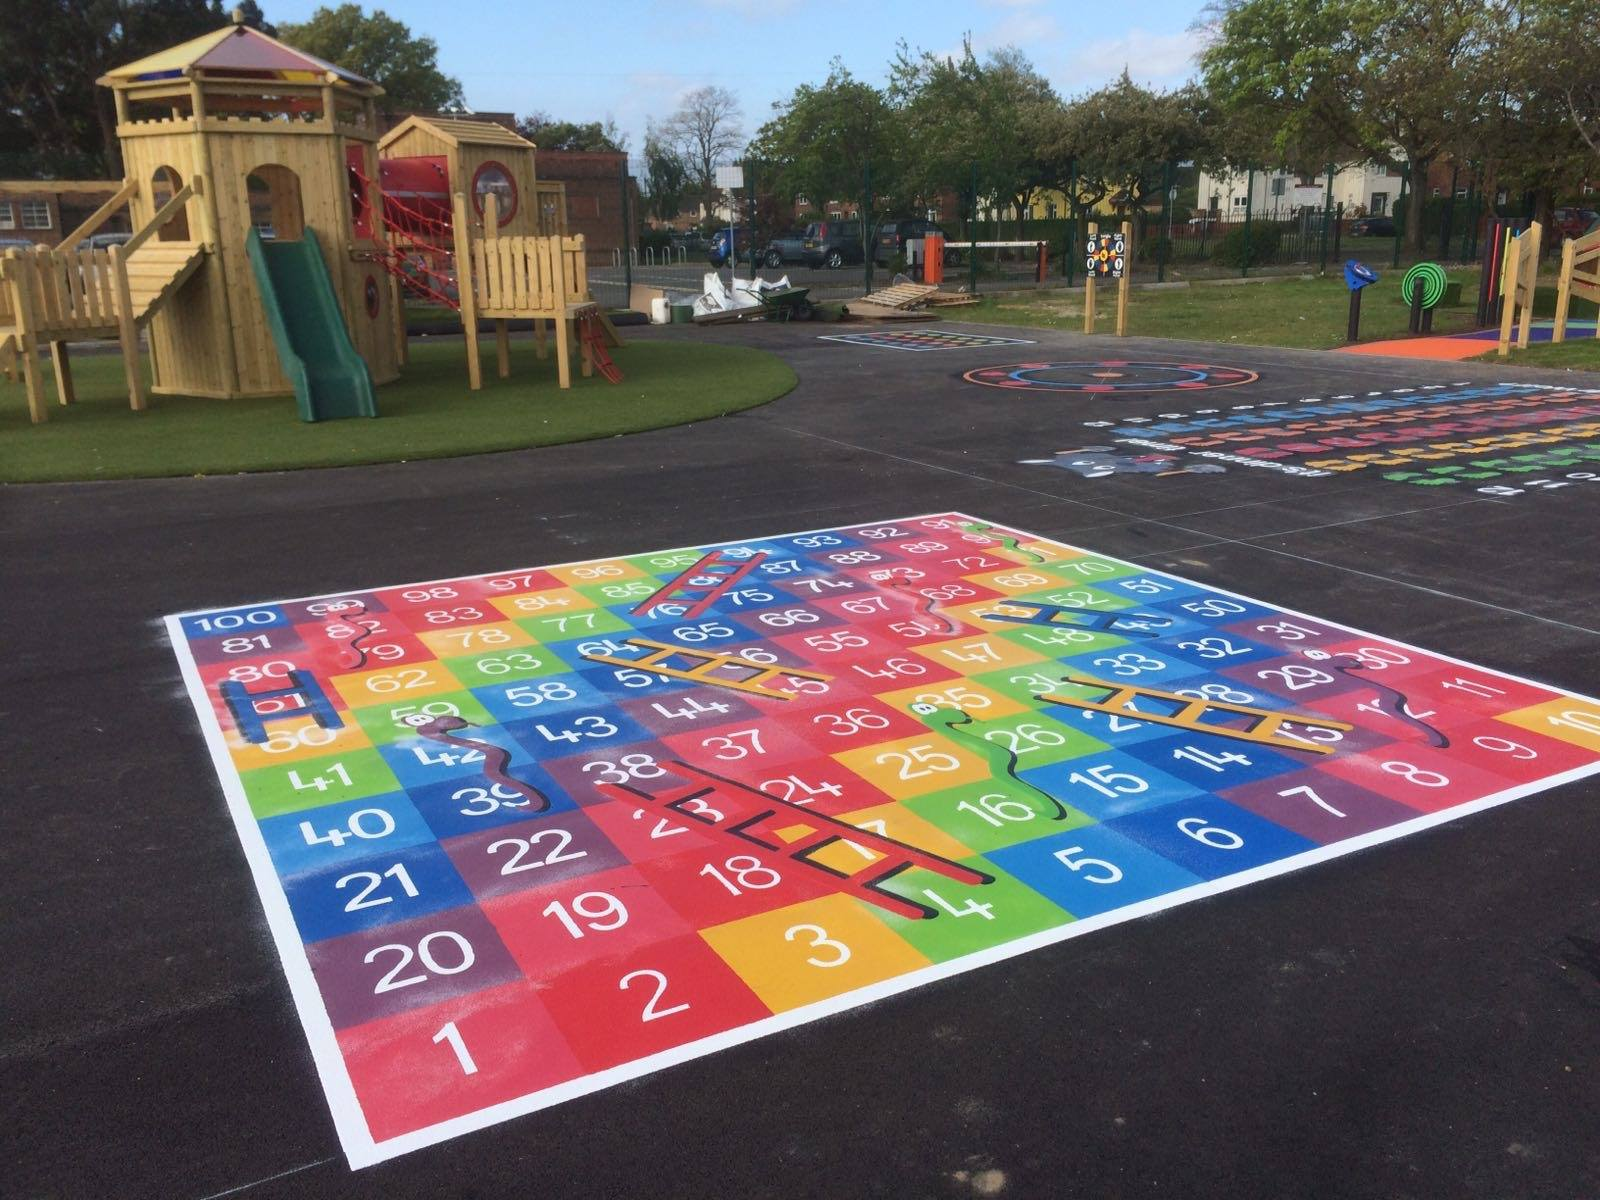 snakes and ladders playground markings